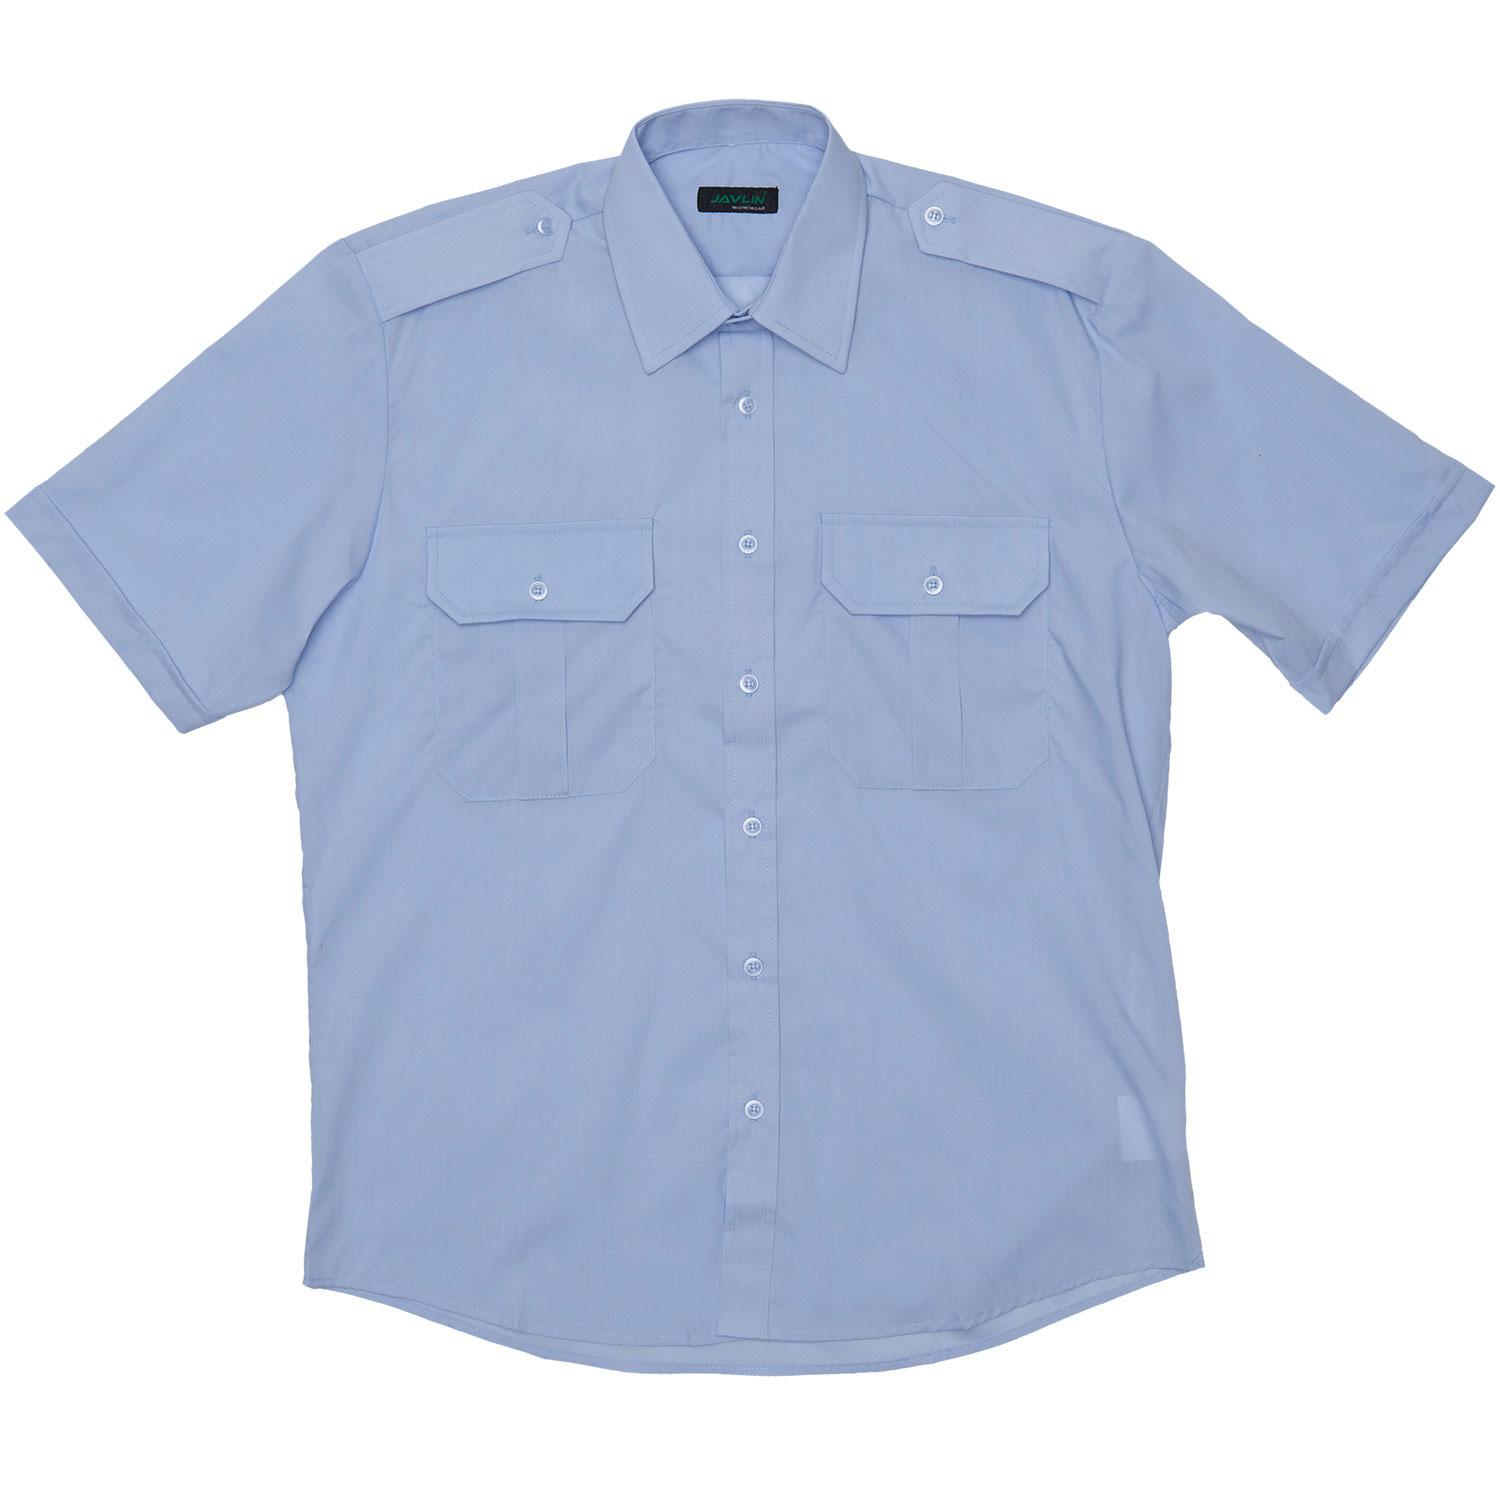 Pale Blue Lounge Shirt S / S